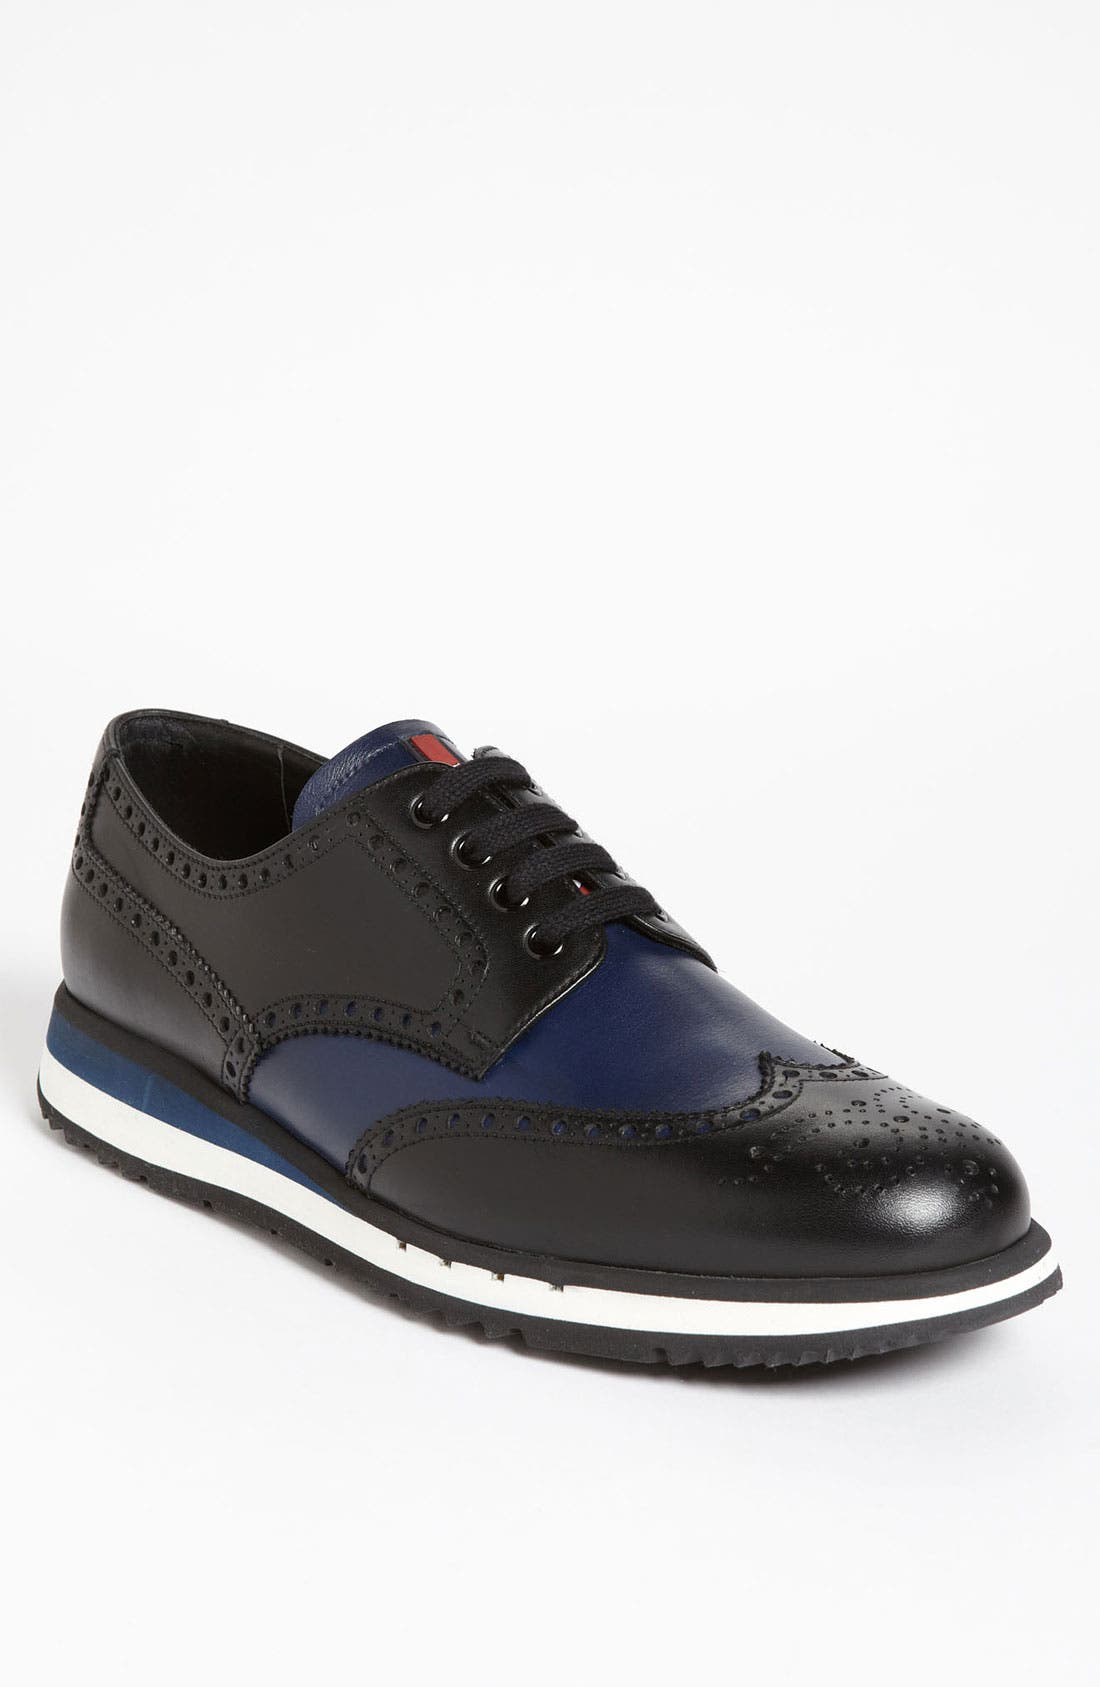 Alternate Image 1 Selected - Prada Two Tone Wingtip Sneaker